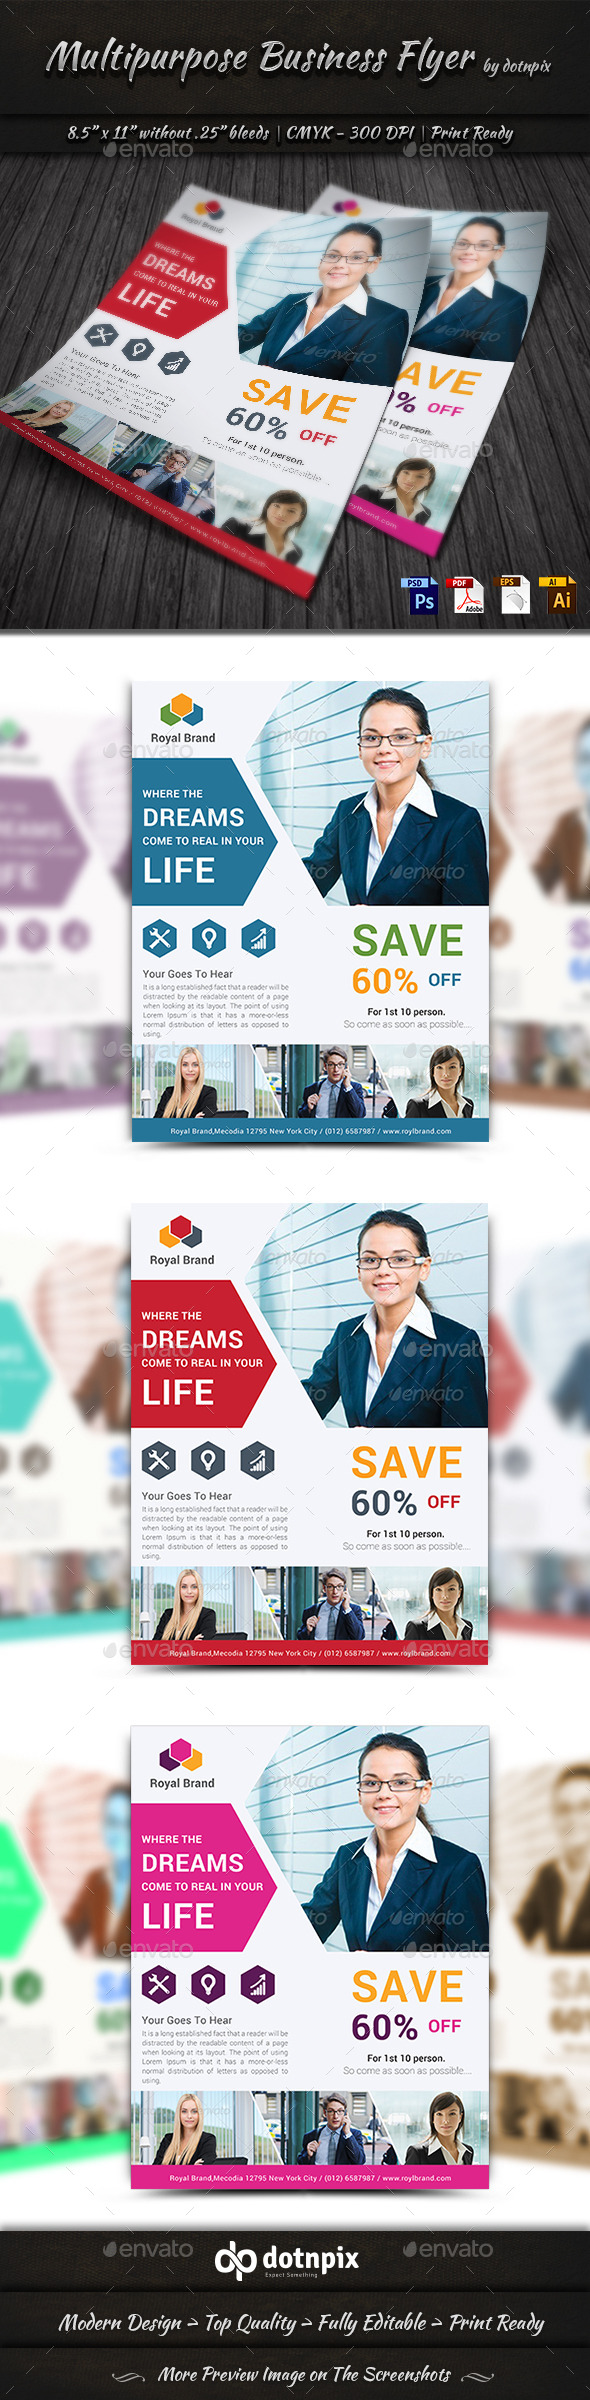 GraphicRiver Multipurpose Business Flyer 9916353